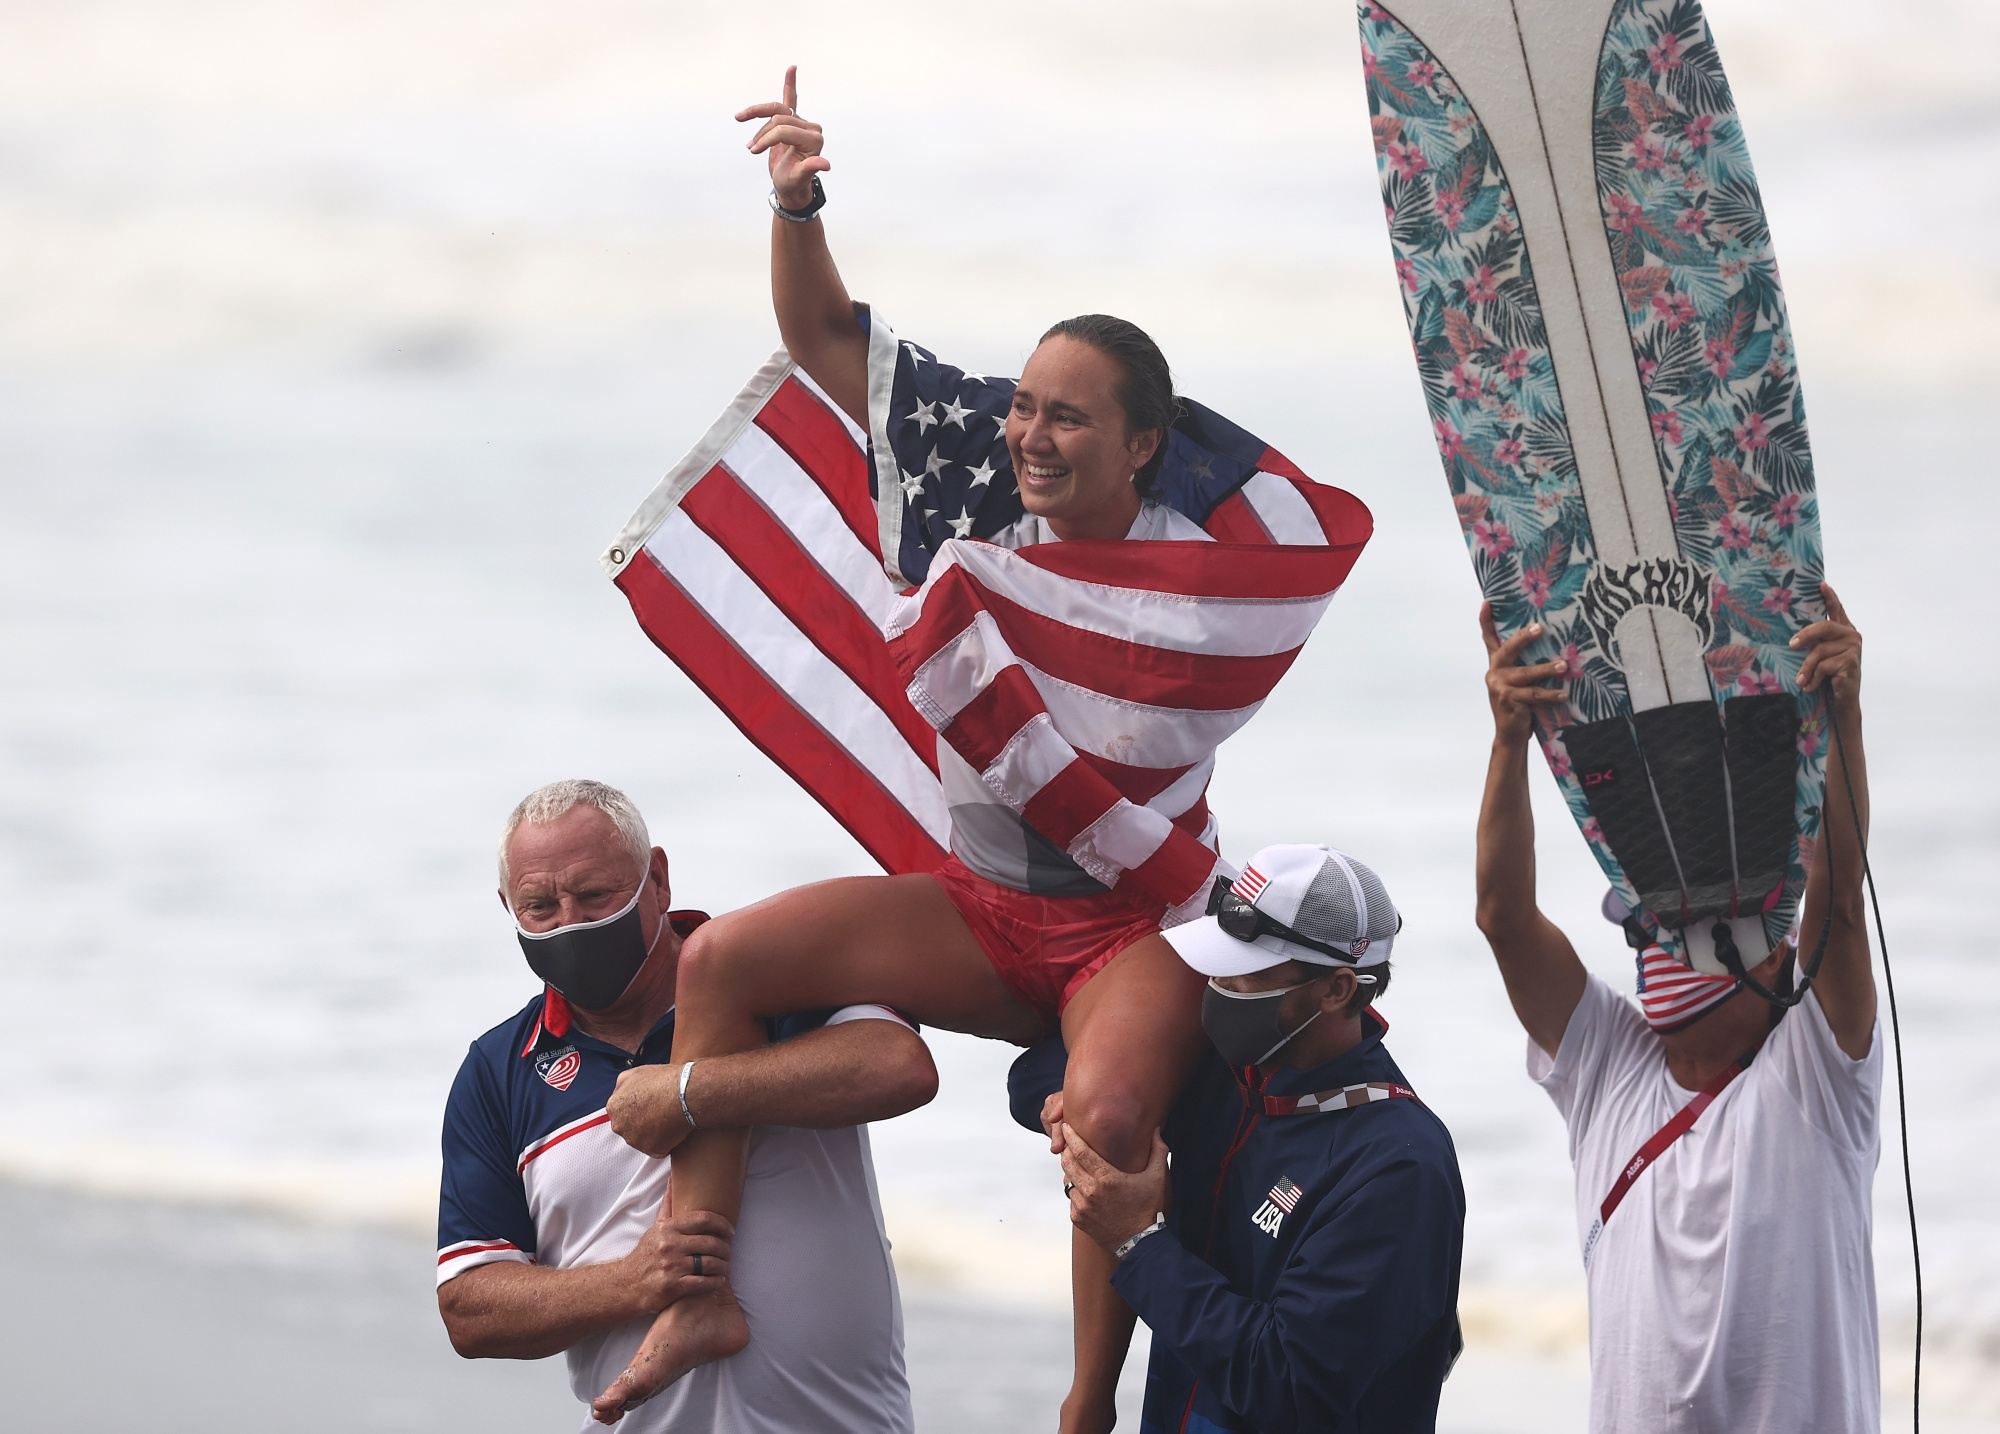 Olympic Gold Medalist Carissa Moore On New Surfing Title